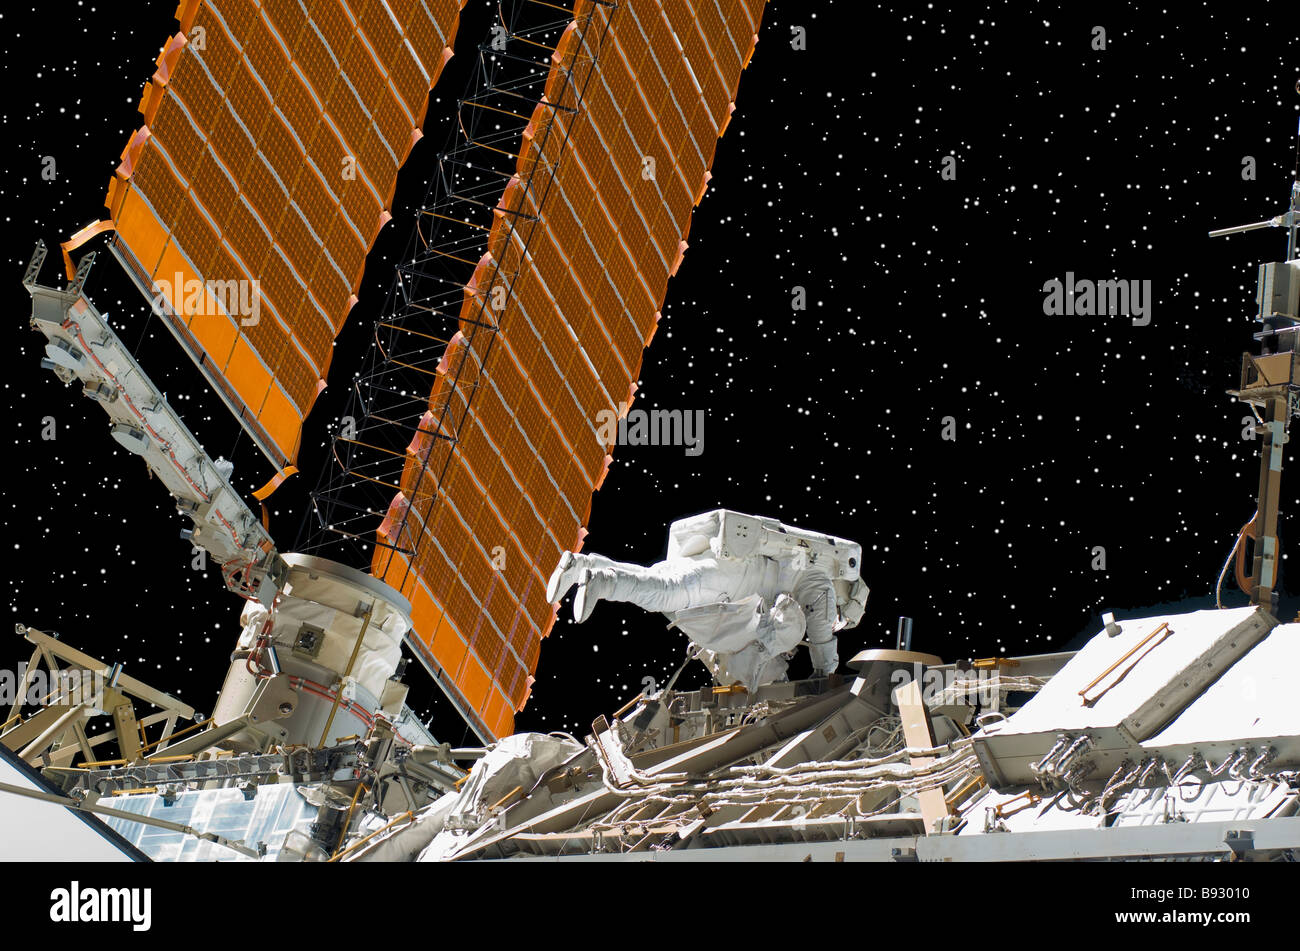 NASA astronaut working on solar panels for International Space Station - Stock Image